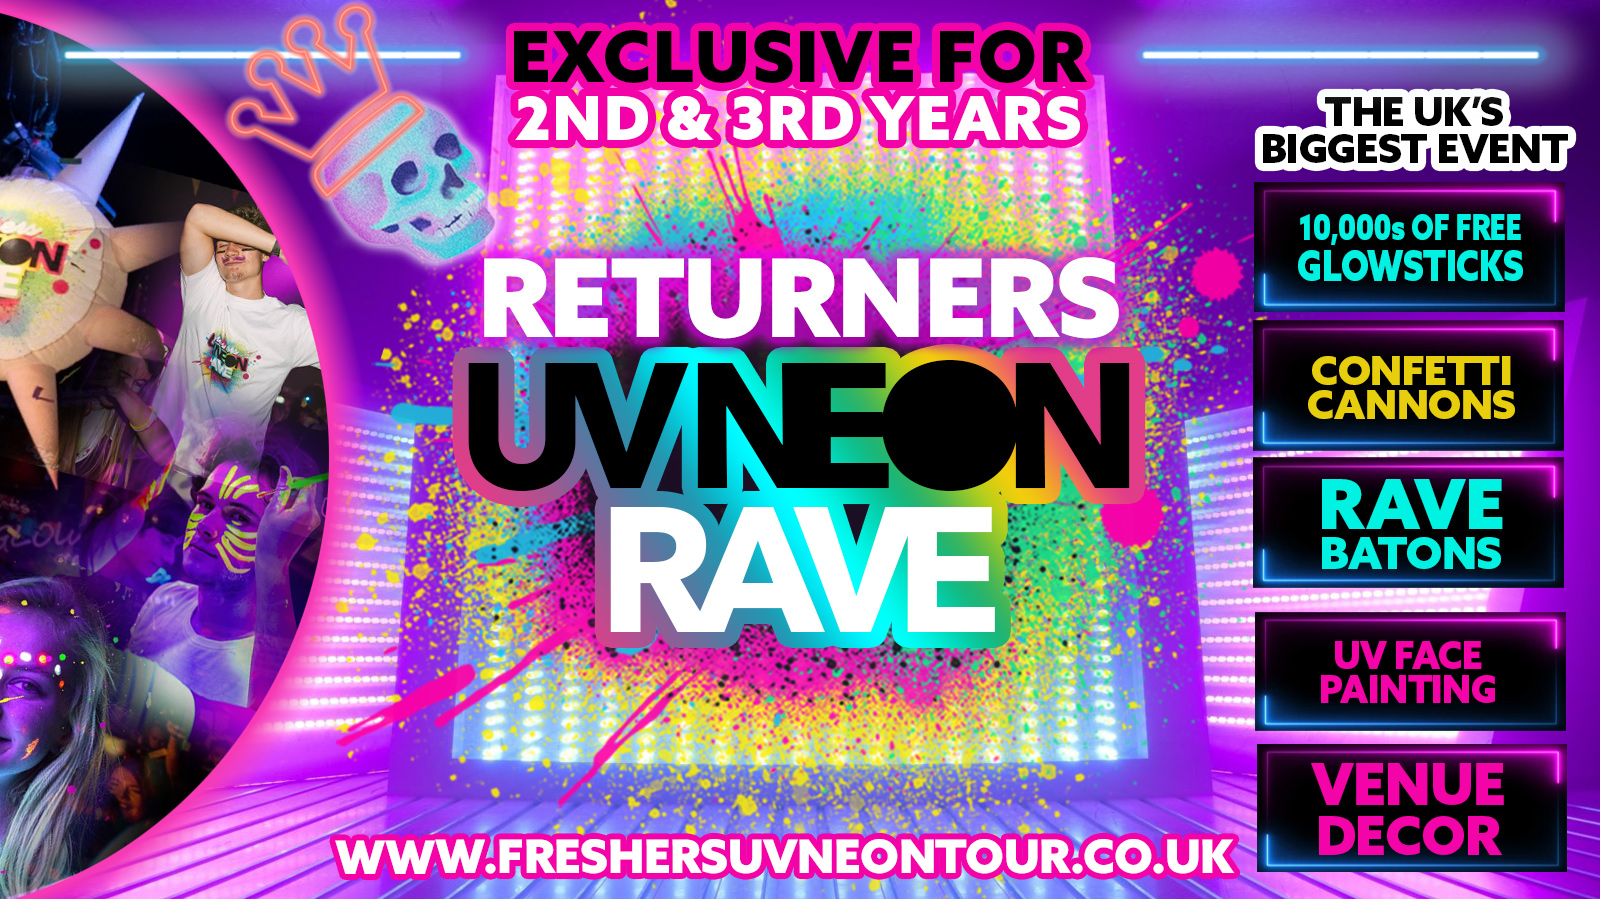 Bournemouth Returners UV Neon Rave   Exclusive for 2nd & 3rd Years